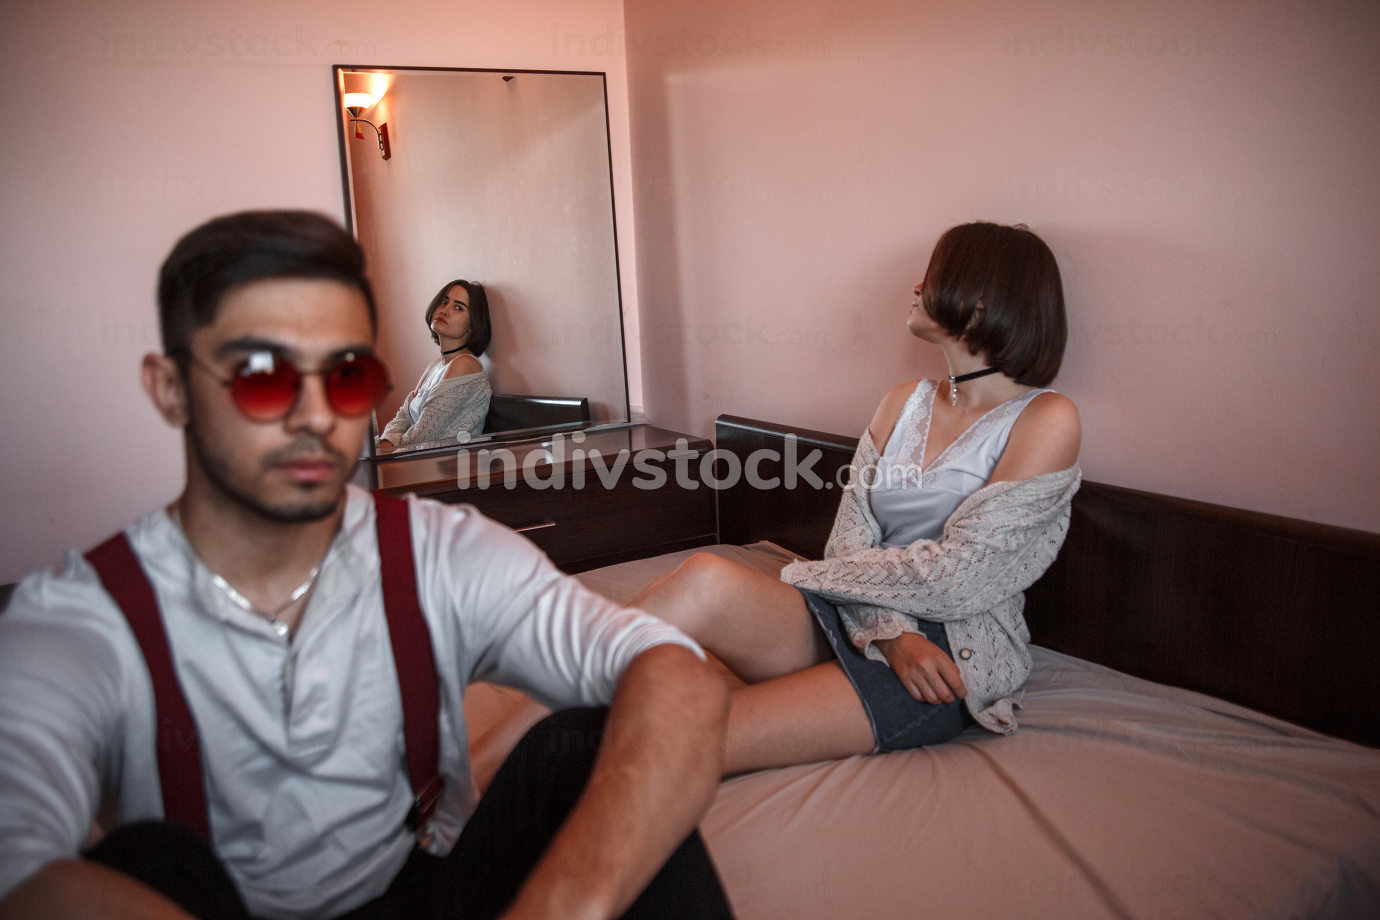 a young swarthy guy and a young brunette girl are sitting on the